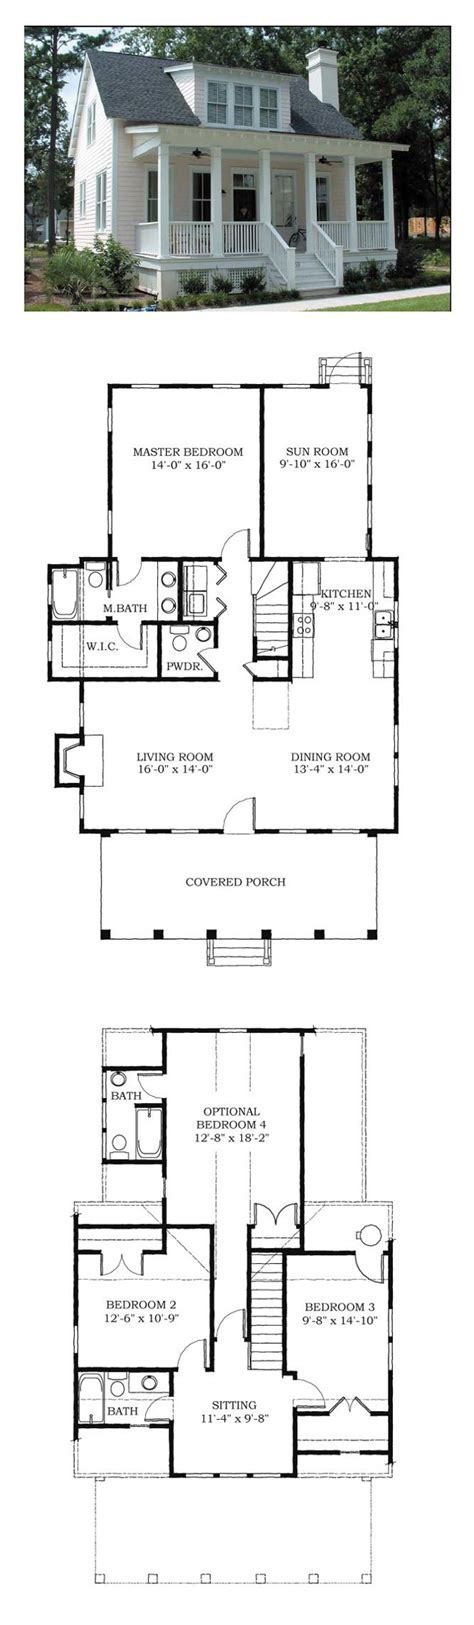 tiny cottages floor plans 101 interior design ideas home bunch interior design ideas